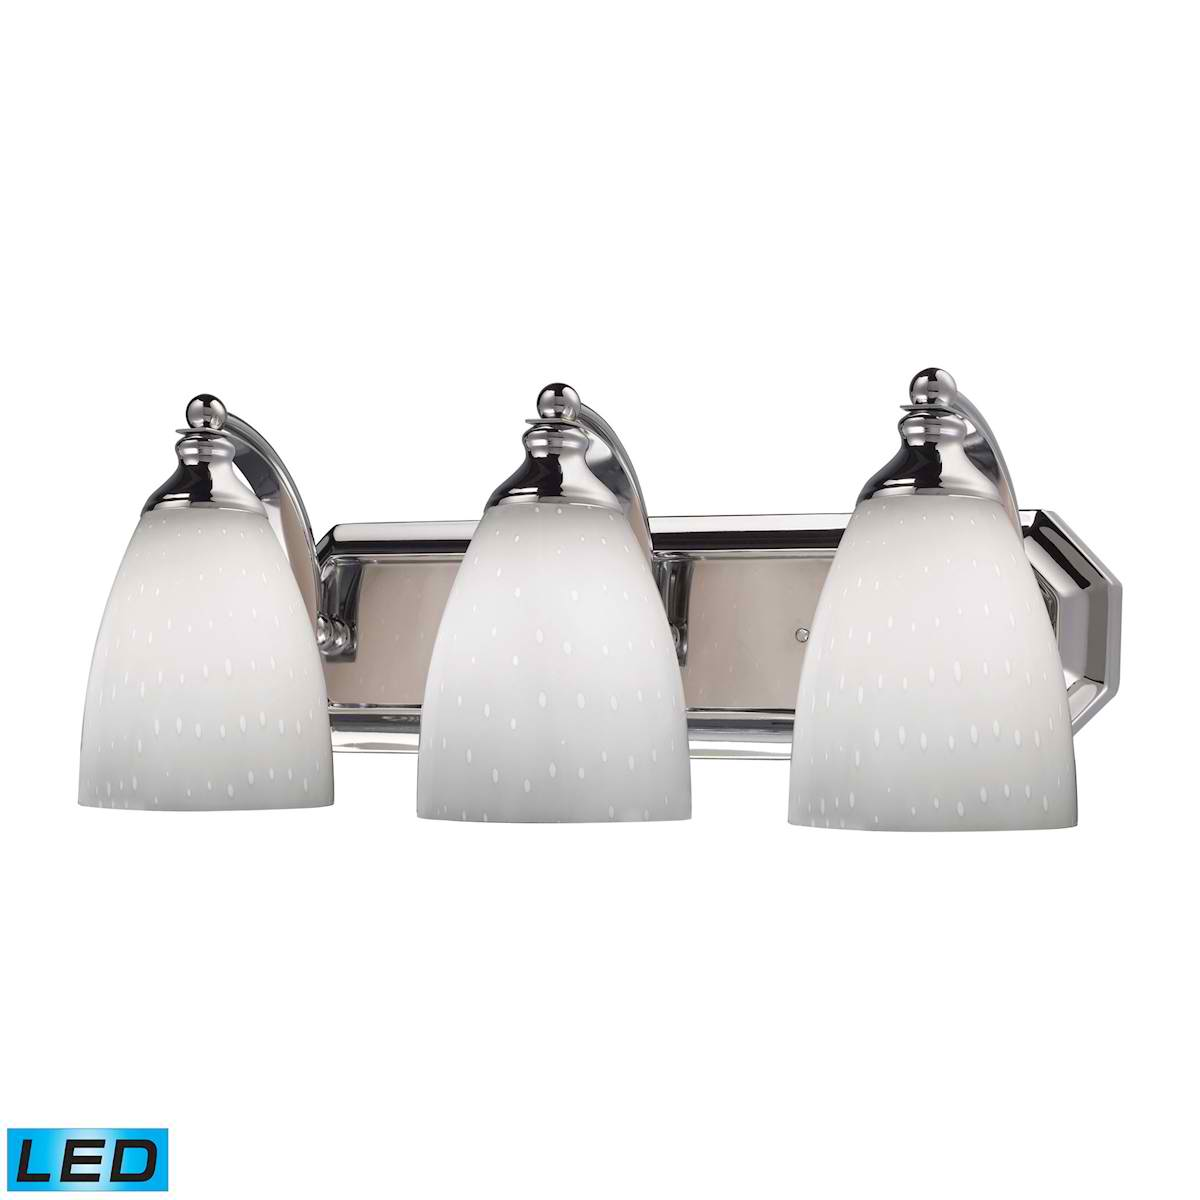 3 Light Vanity in Polished Chrome and Simply White Glass - LED, 800 Lumens (2400 Lumens Total) With Full Scale